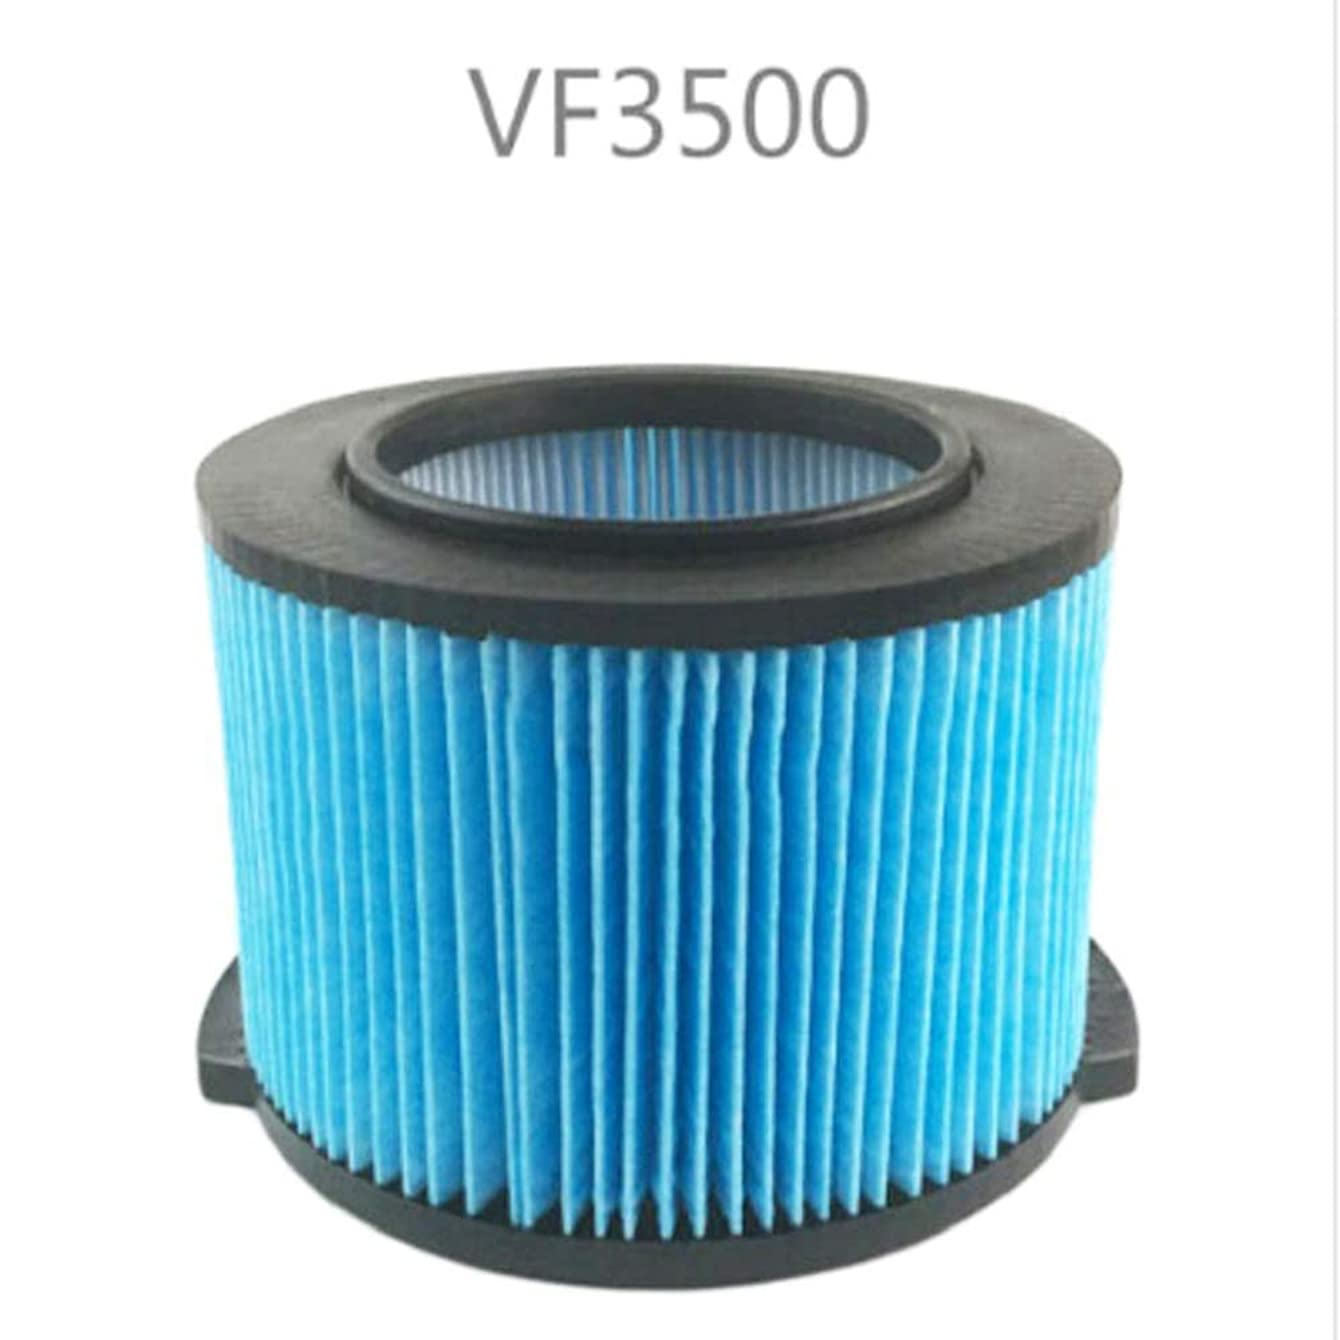 WICHEMI VF3500 3-Layer Filter Replacement for Ridgid WD3050, WD4070, WD4080, WD4522, 4000RV, 4500RV 3-4.5 Gallon Wet Dry Vacuum Cleaner